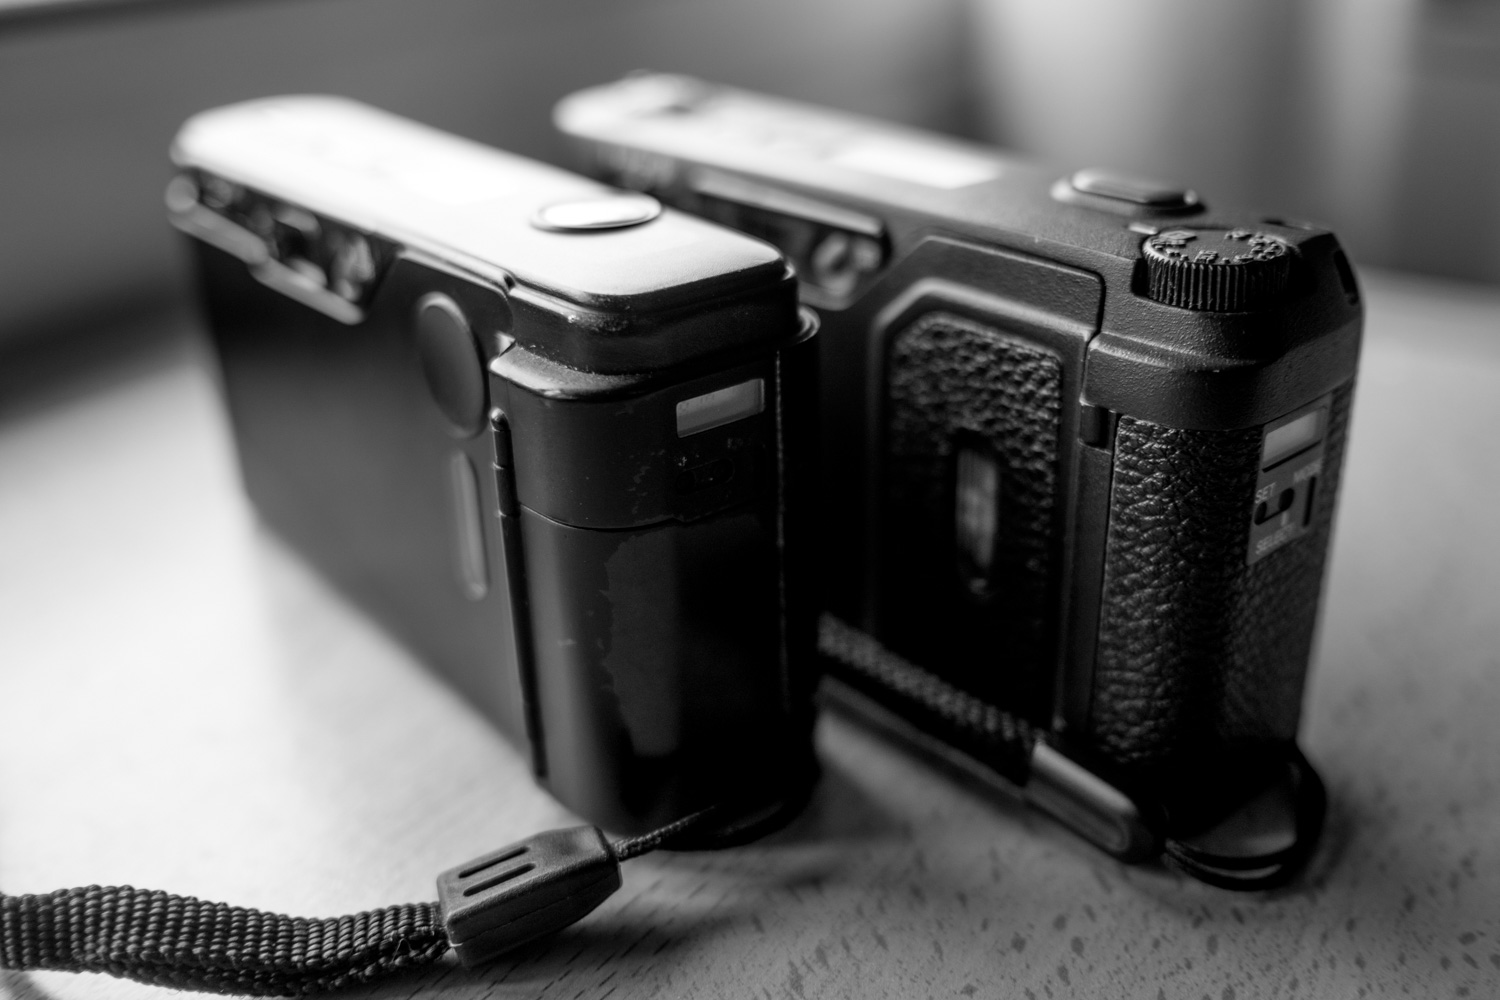 Rear-side - Ricoh GR10 (left), Ricoh GR1s (right)